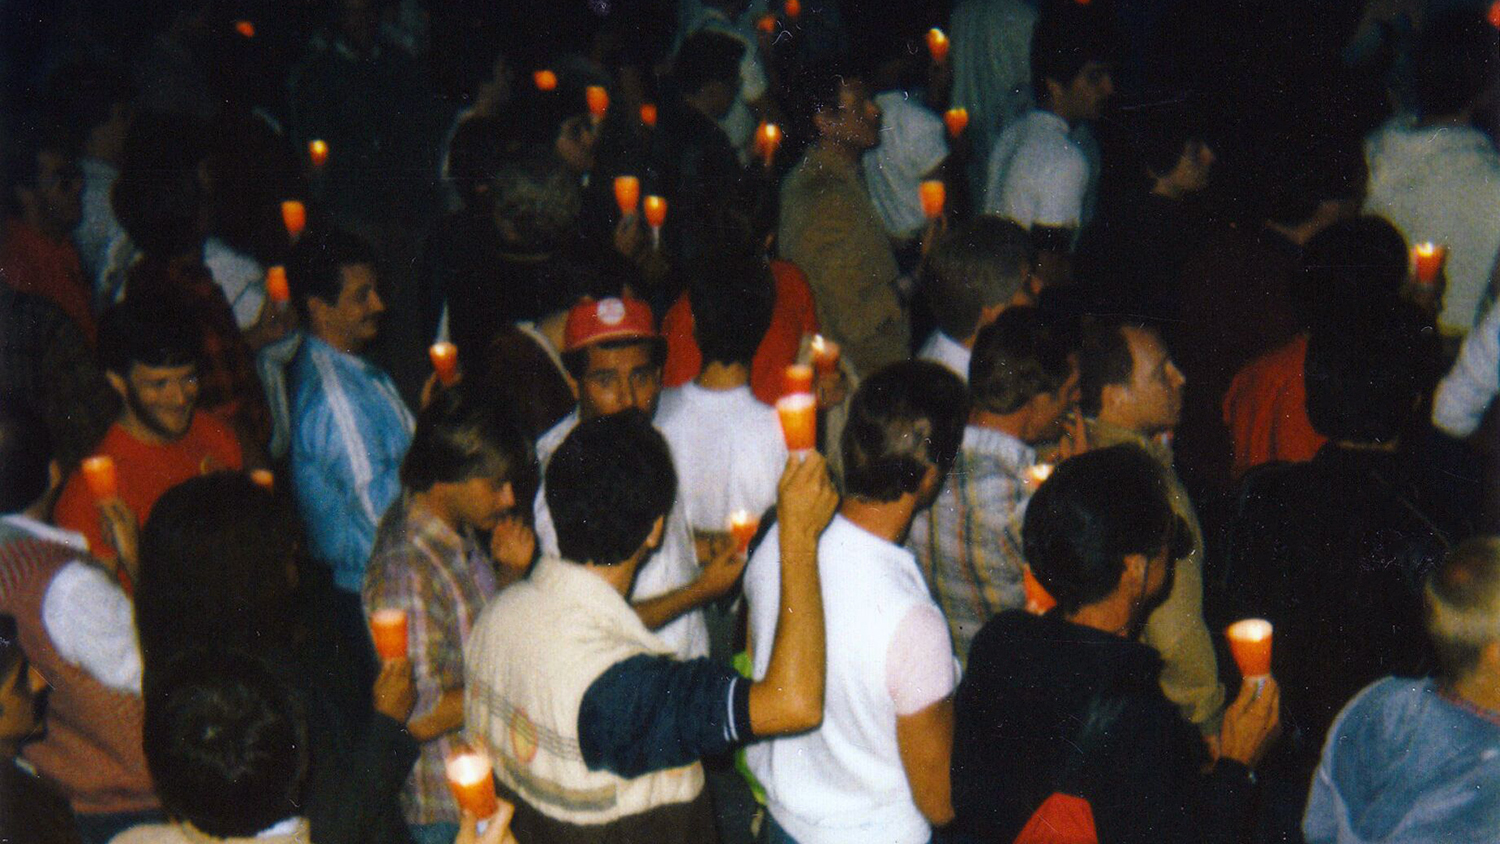 More than 5,000 people march outside the Federal Building in Los Angeles in May 1983 to draw attention to the emerging AIDS crisis.